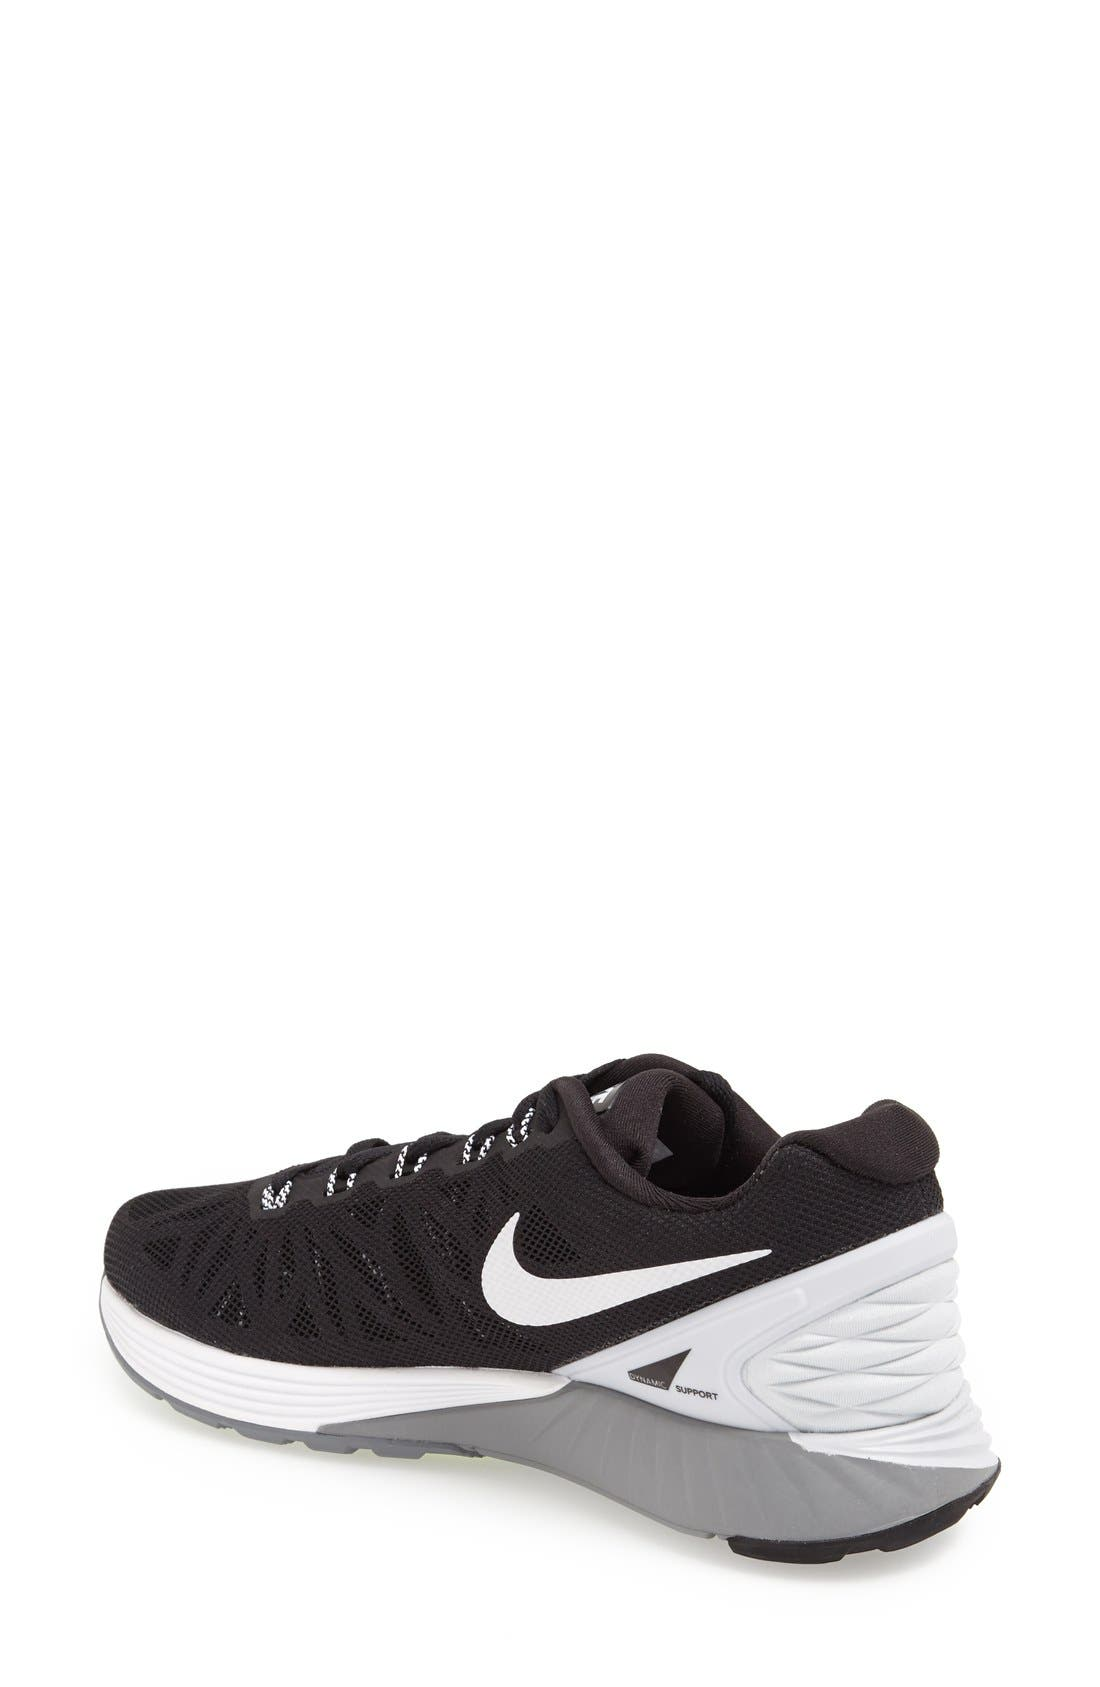 Alternate Image 2  - Nike 'Lunarglide 6' Running Shoe (Women)